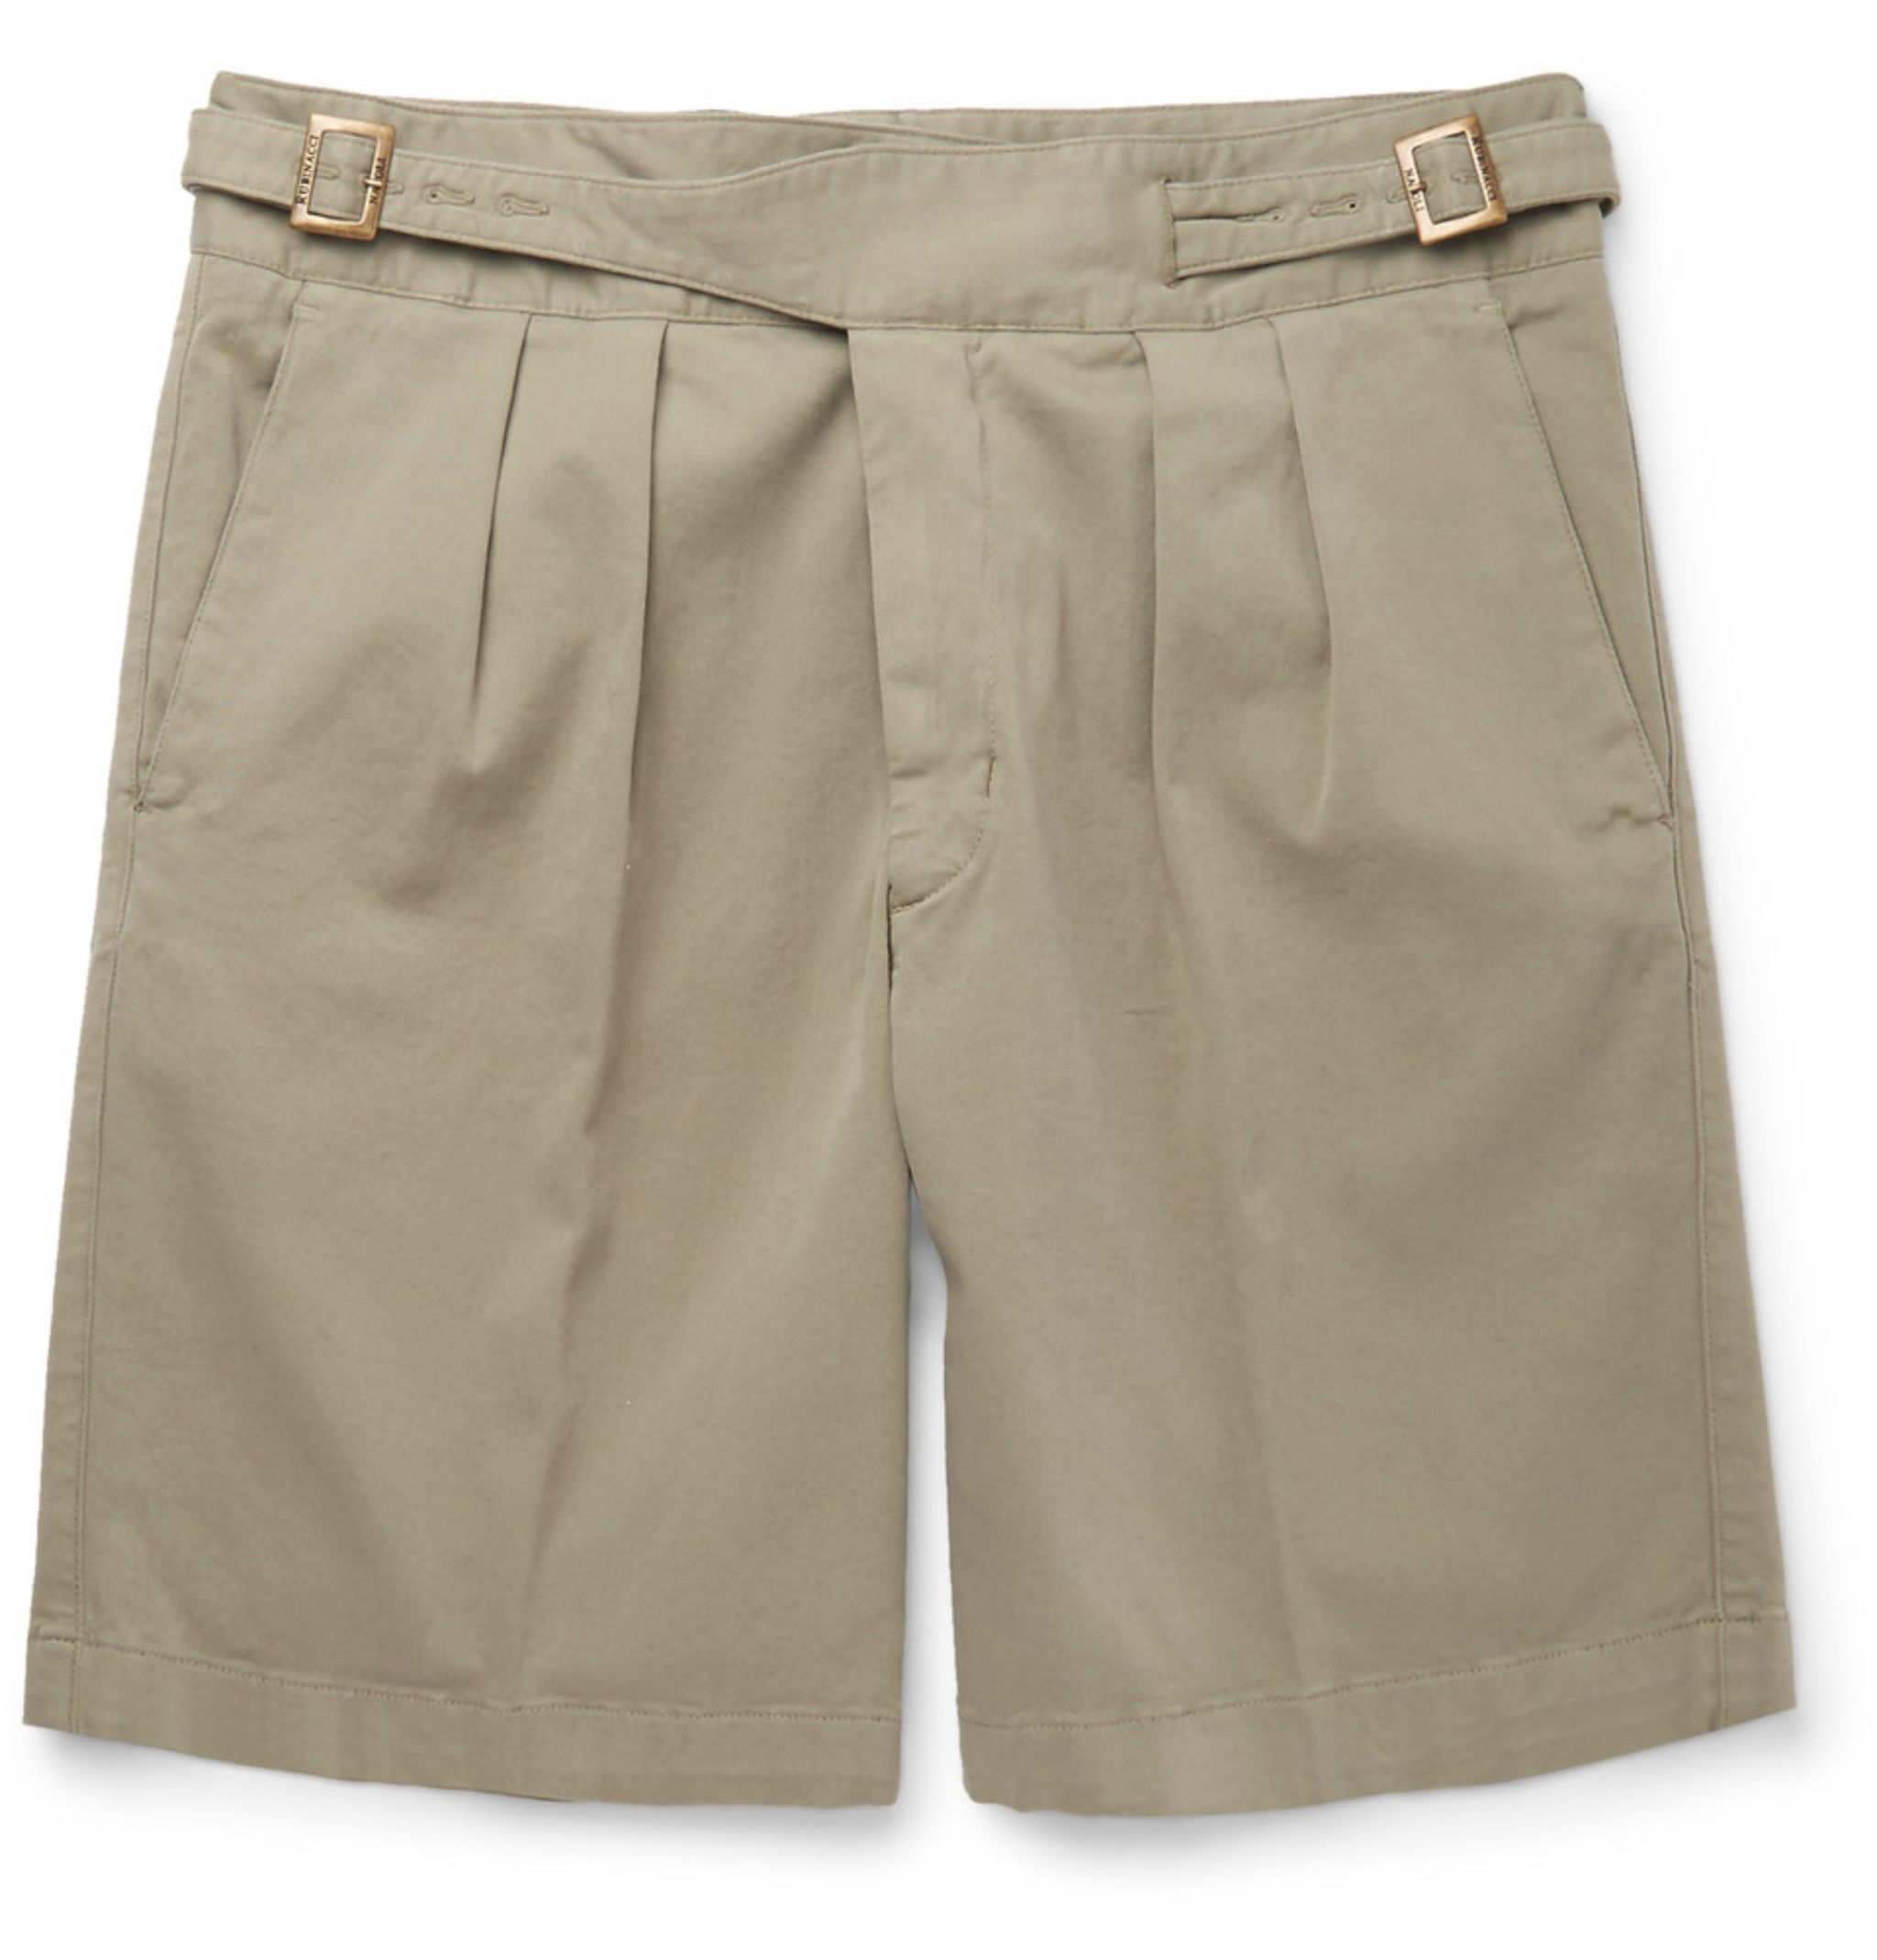 Shorts for summer - Rubinacci pleated Ghurka shorts